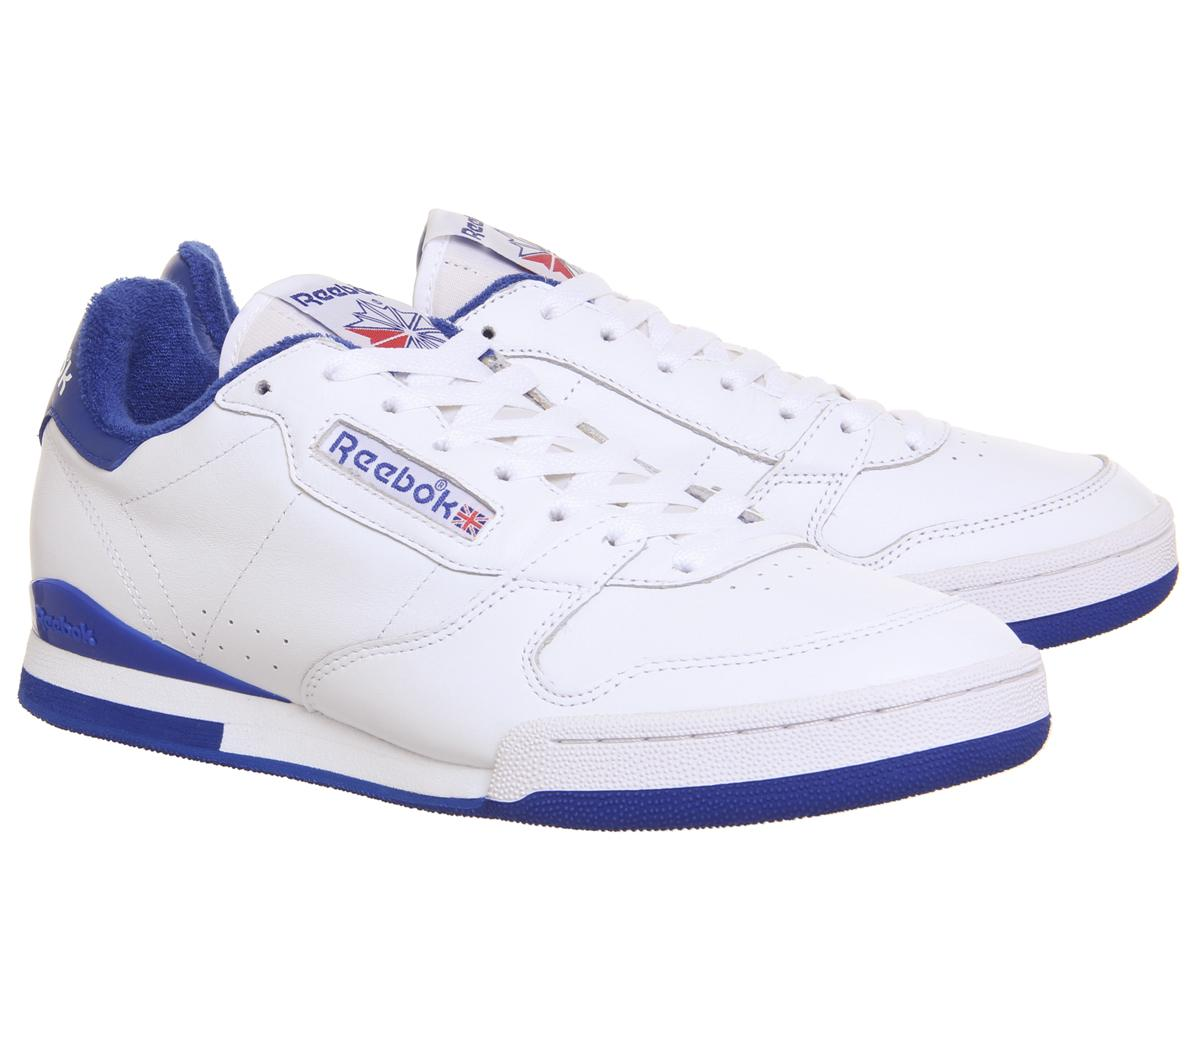 Reebok Leather Phase 1 84 Archive Te in White for Men - Save 42%